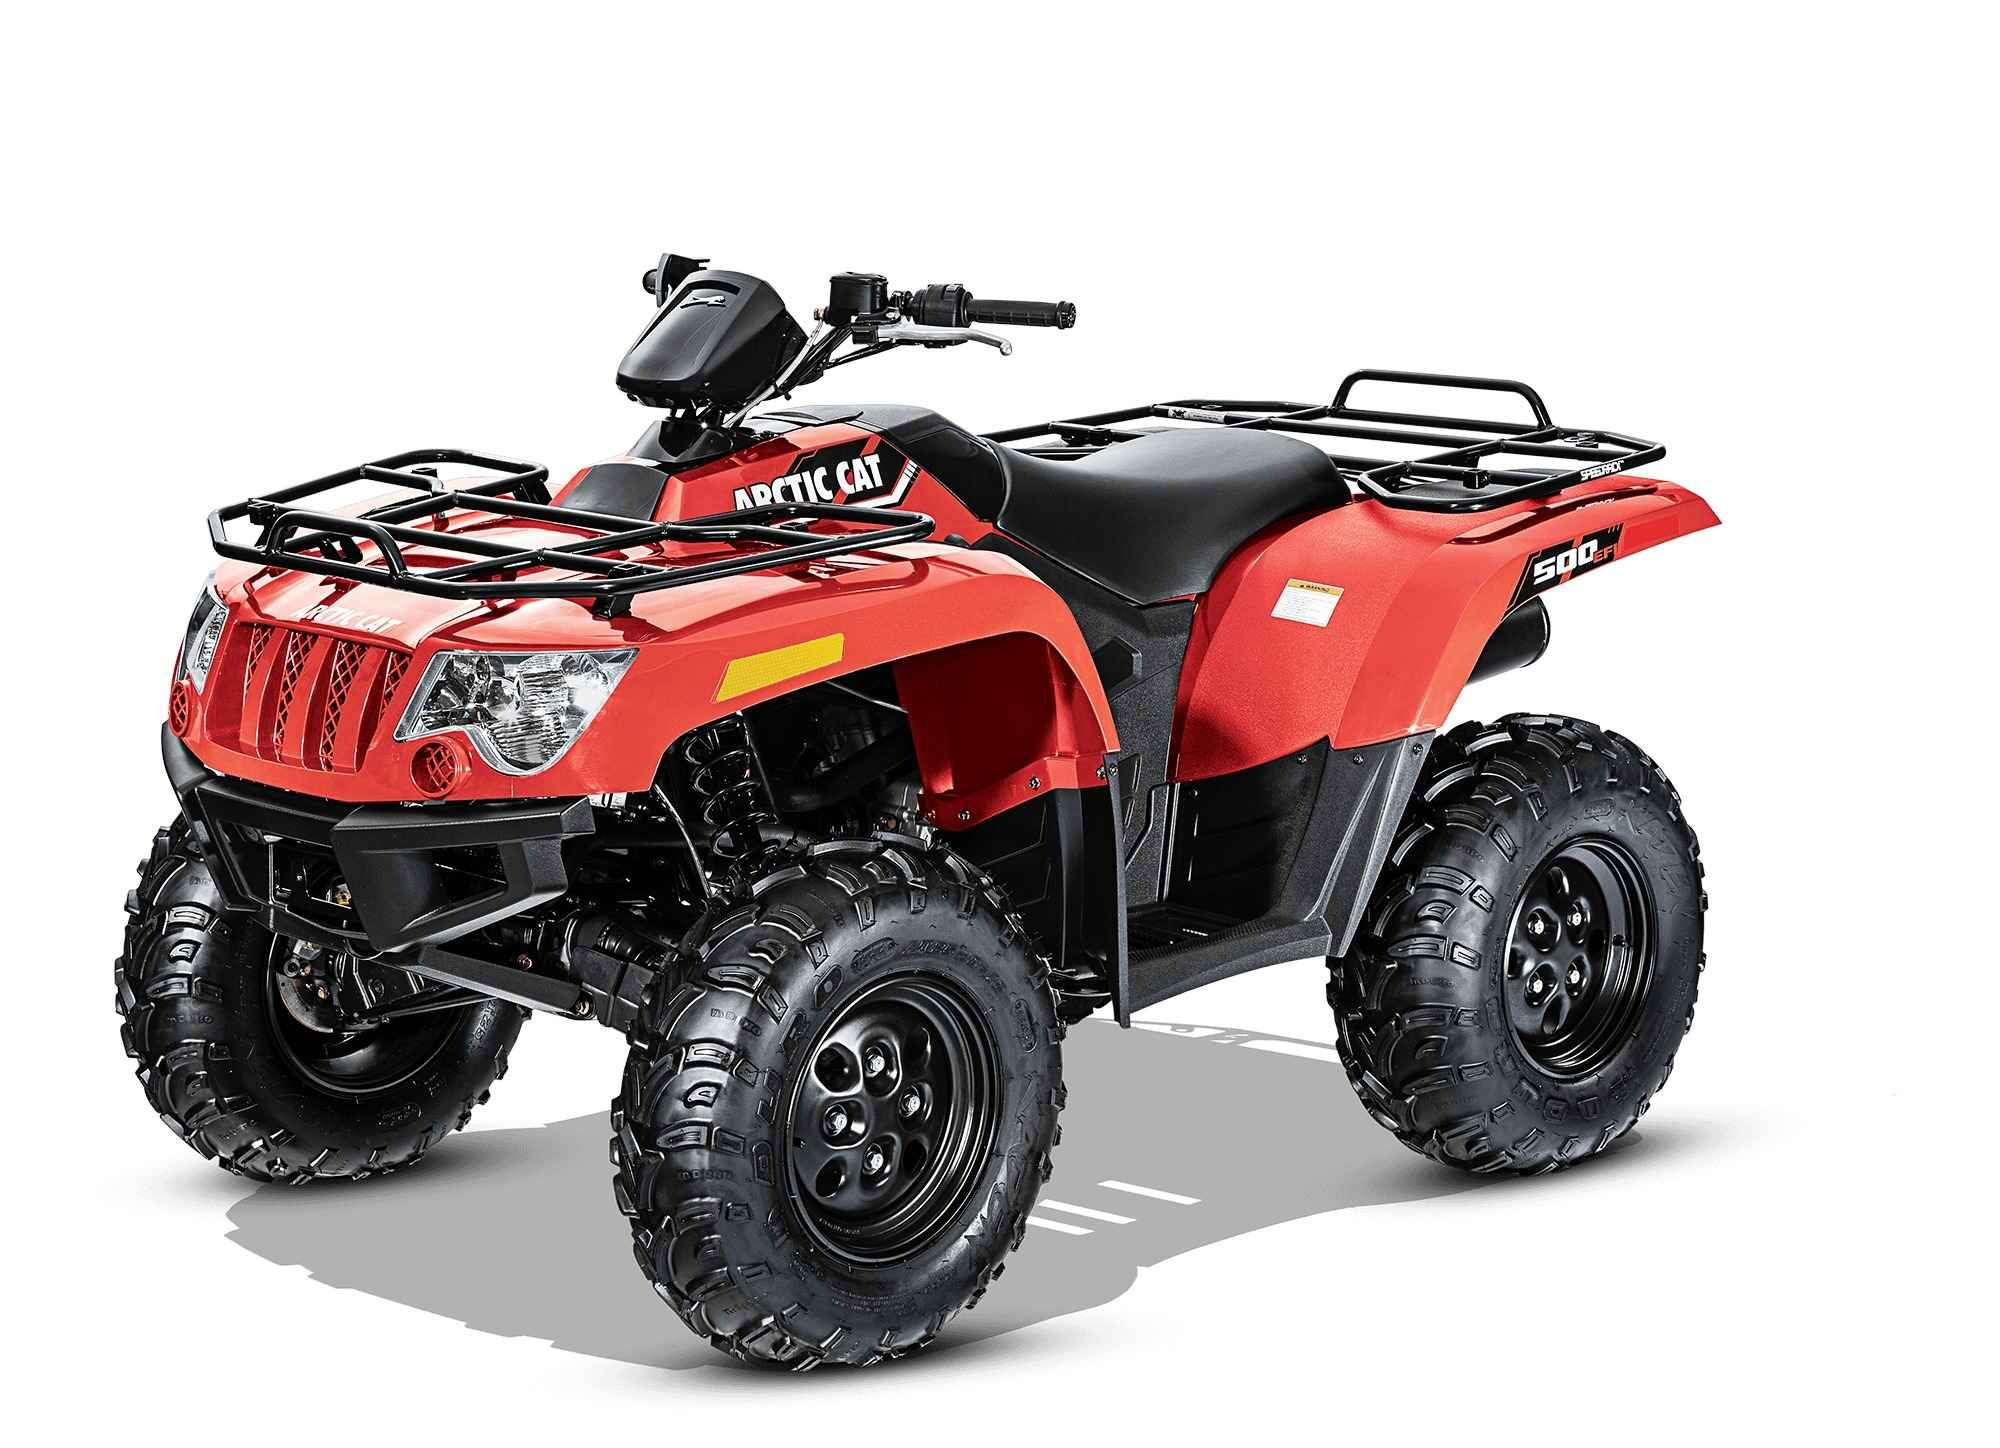 New 2016 Arctic Cat Cat 500 Classic Red ATVs For Sale in California. 2016 Arctic Cat Cat 500 Classic Red, The 500 is an industry favorite for a reason. The 443cc, SOHC, liquid-cooled single-cylinder engine delivers smooth, consistent acceleration. Electronic fuel injection enables a wide torque curve and effortless power delivery by constantly tuning the engine for any temperature, elevation and humidity changes.